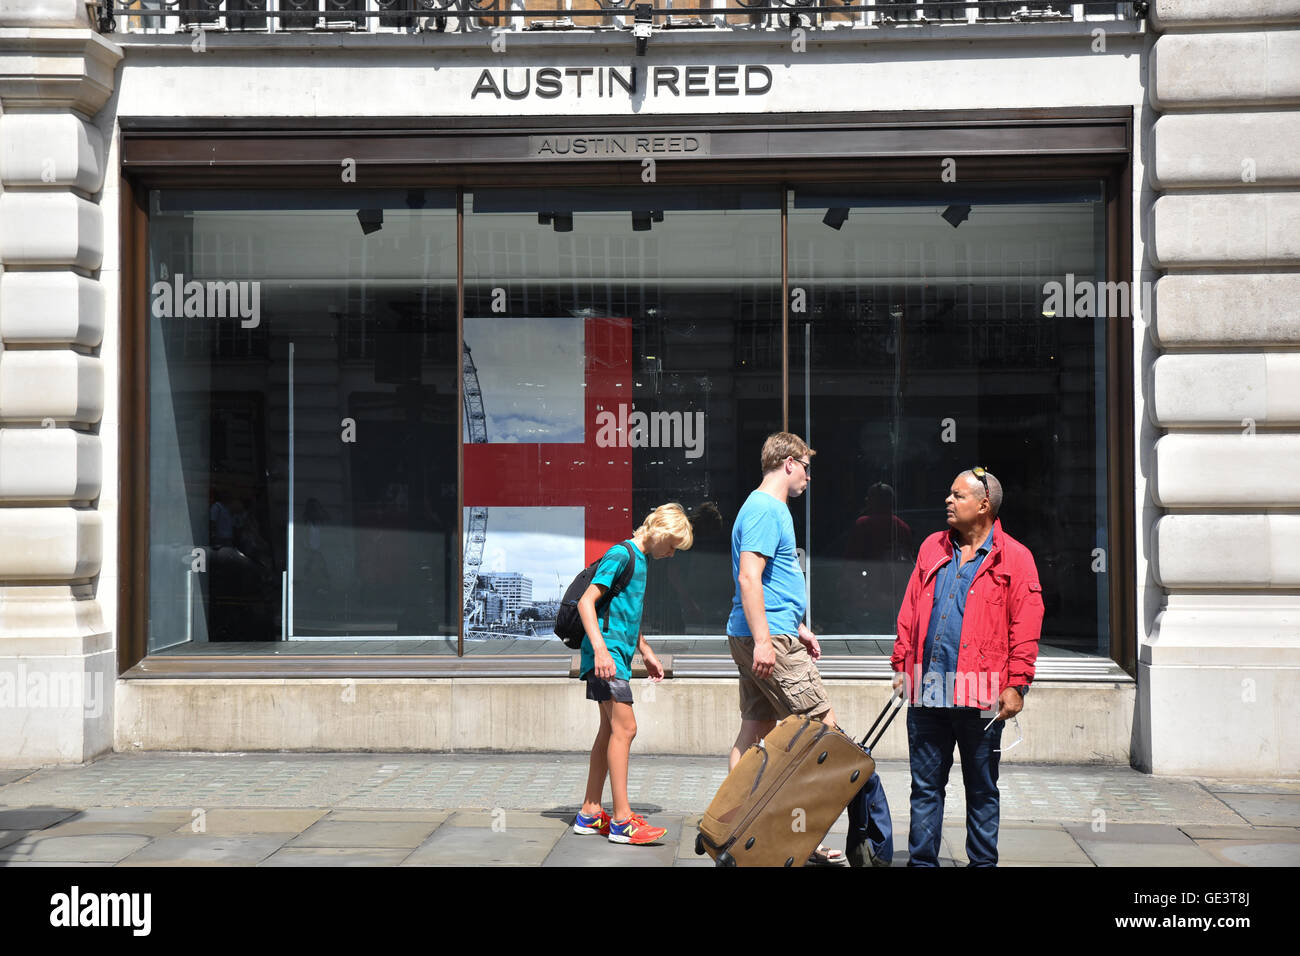 Regent Street London Uk 23rd July 2016 Austin Reed Flagship Store Stock Photo Alamy